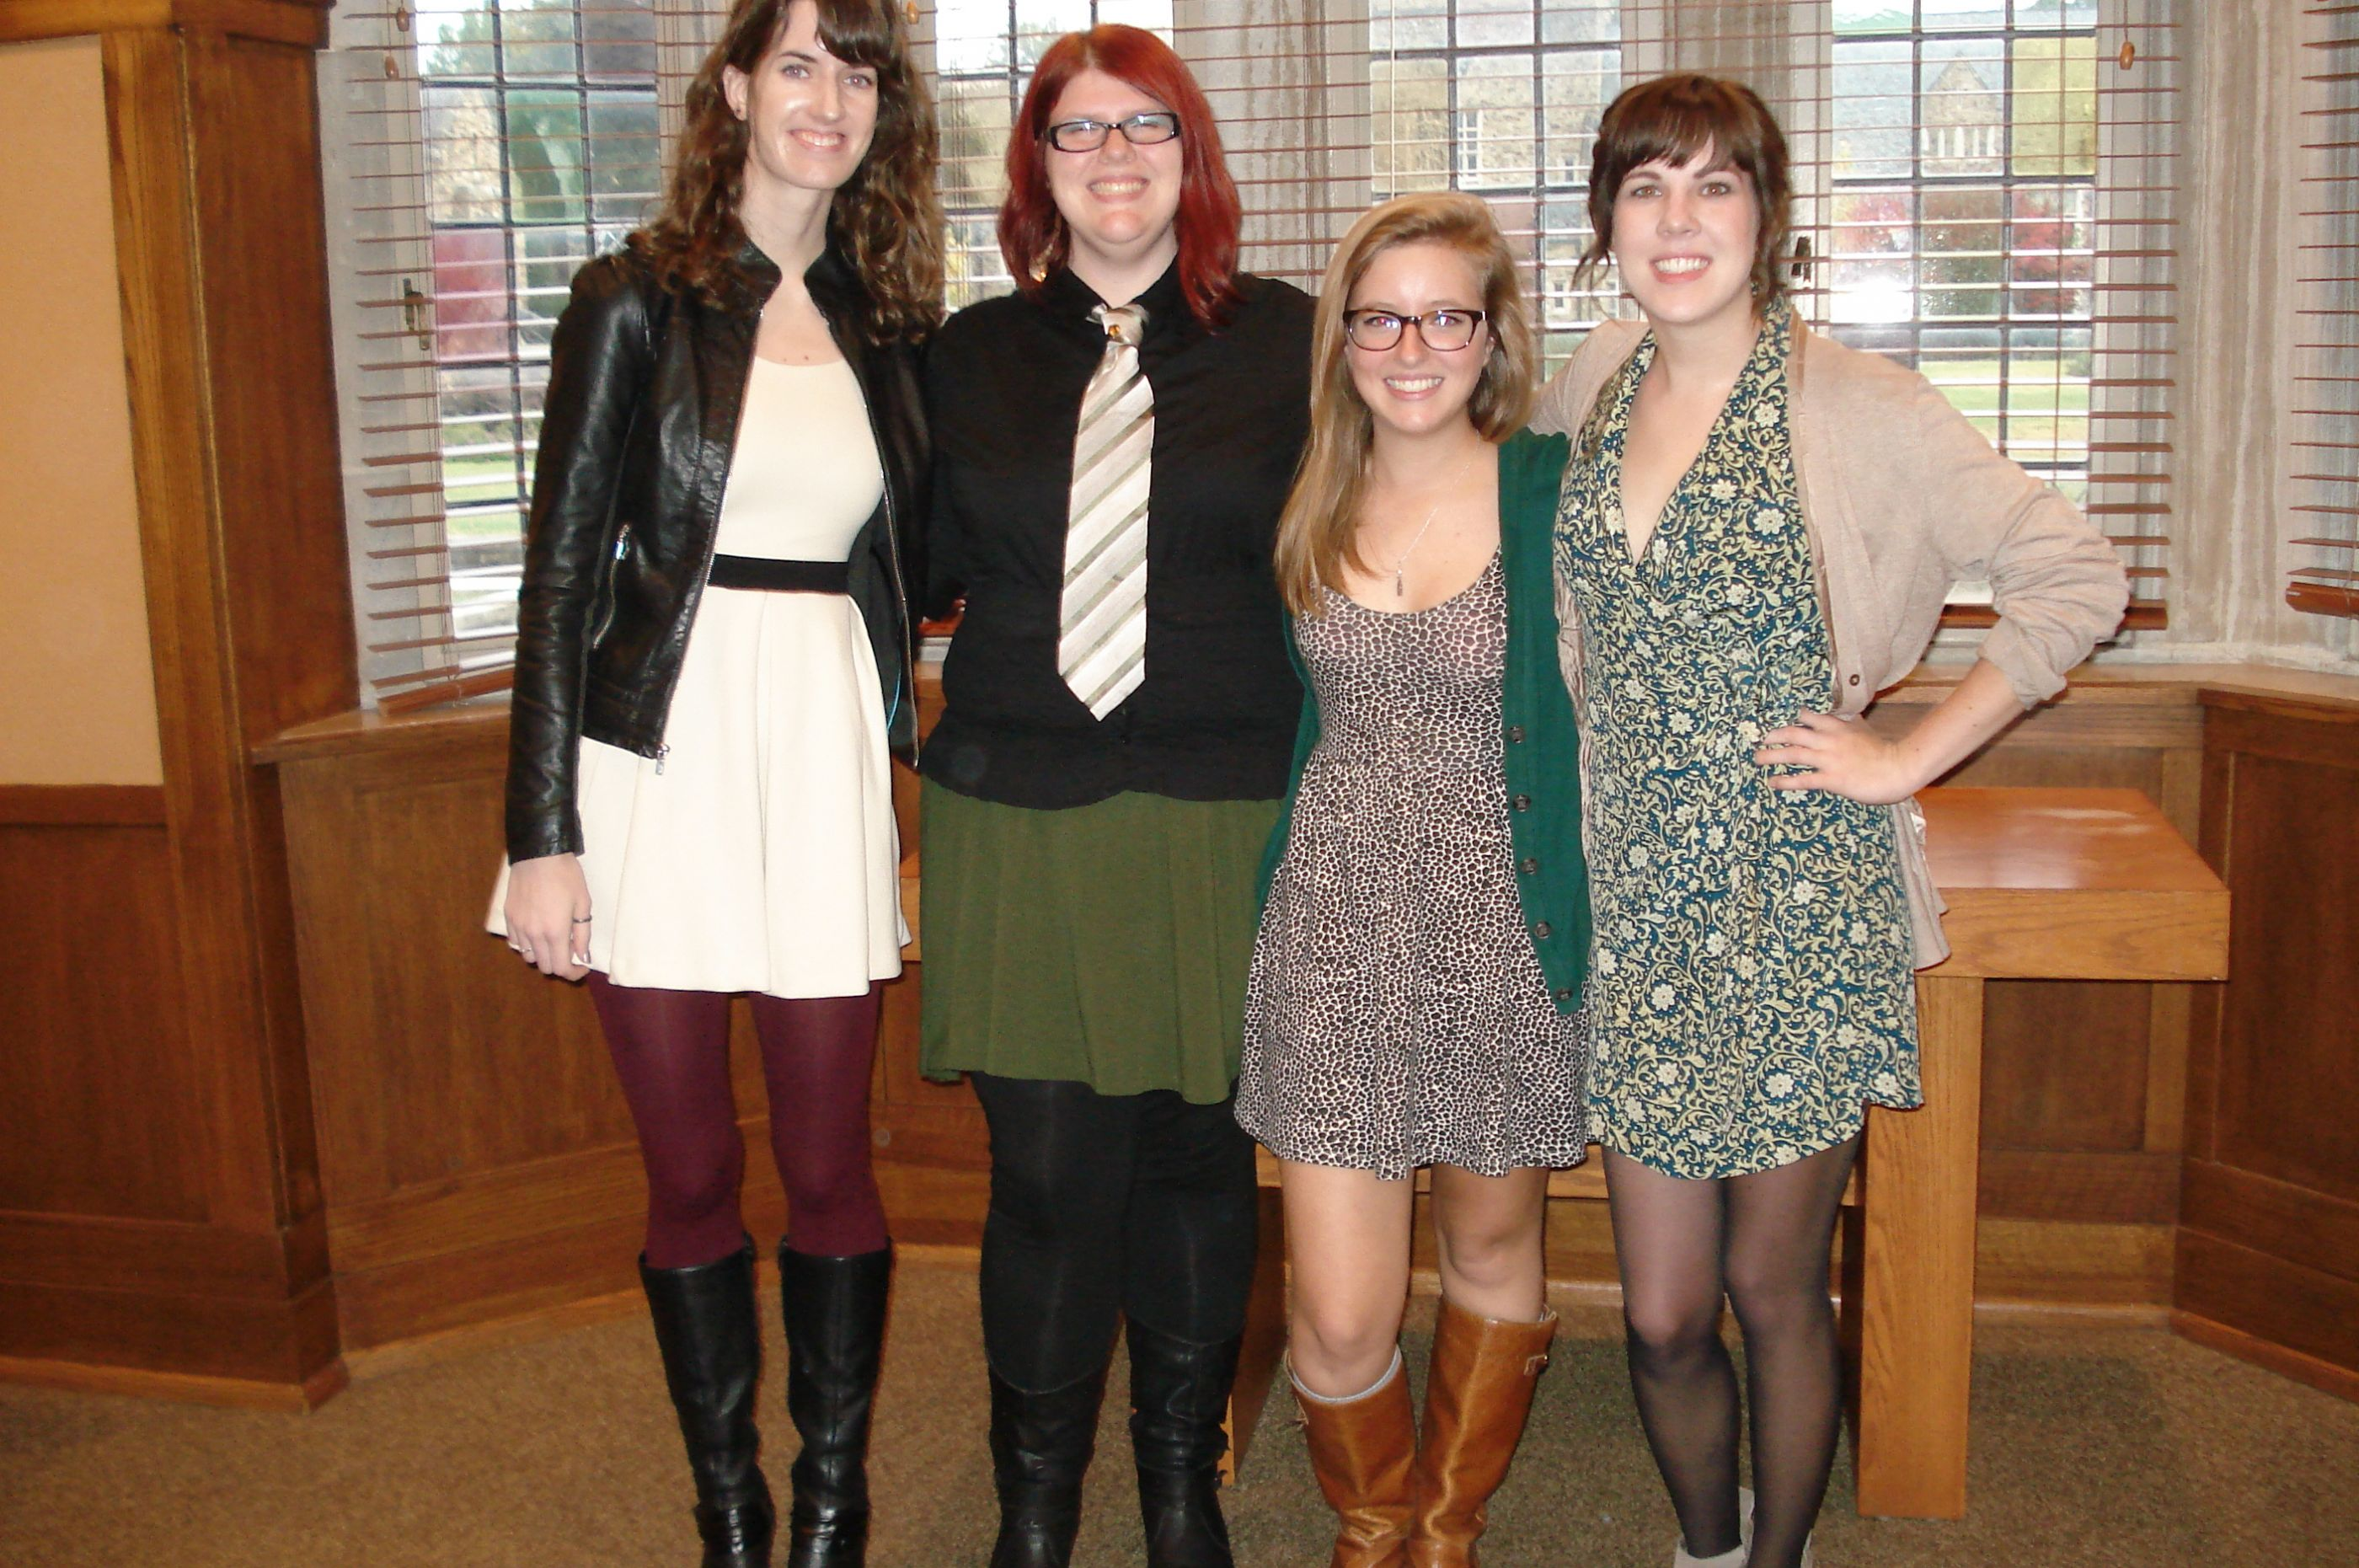 2013 induction ceremony, four female students